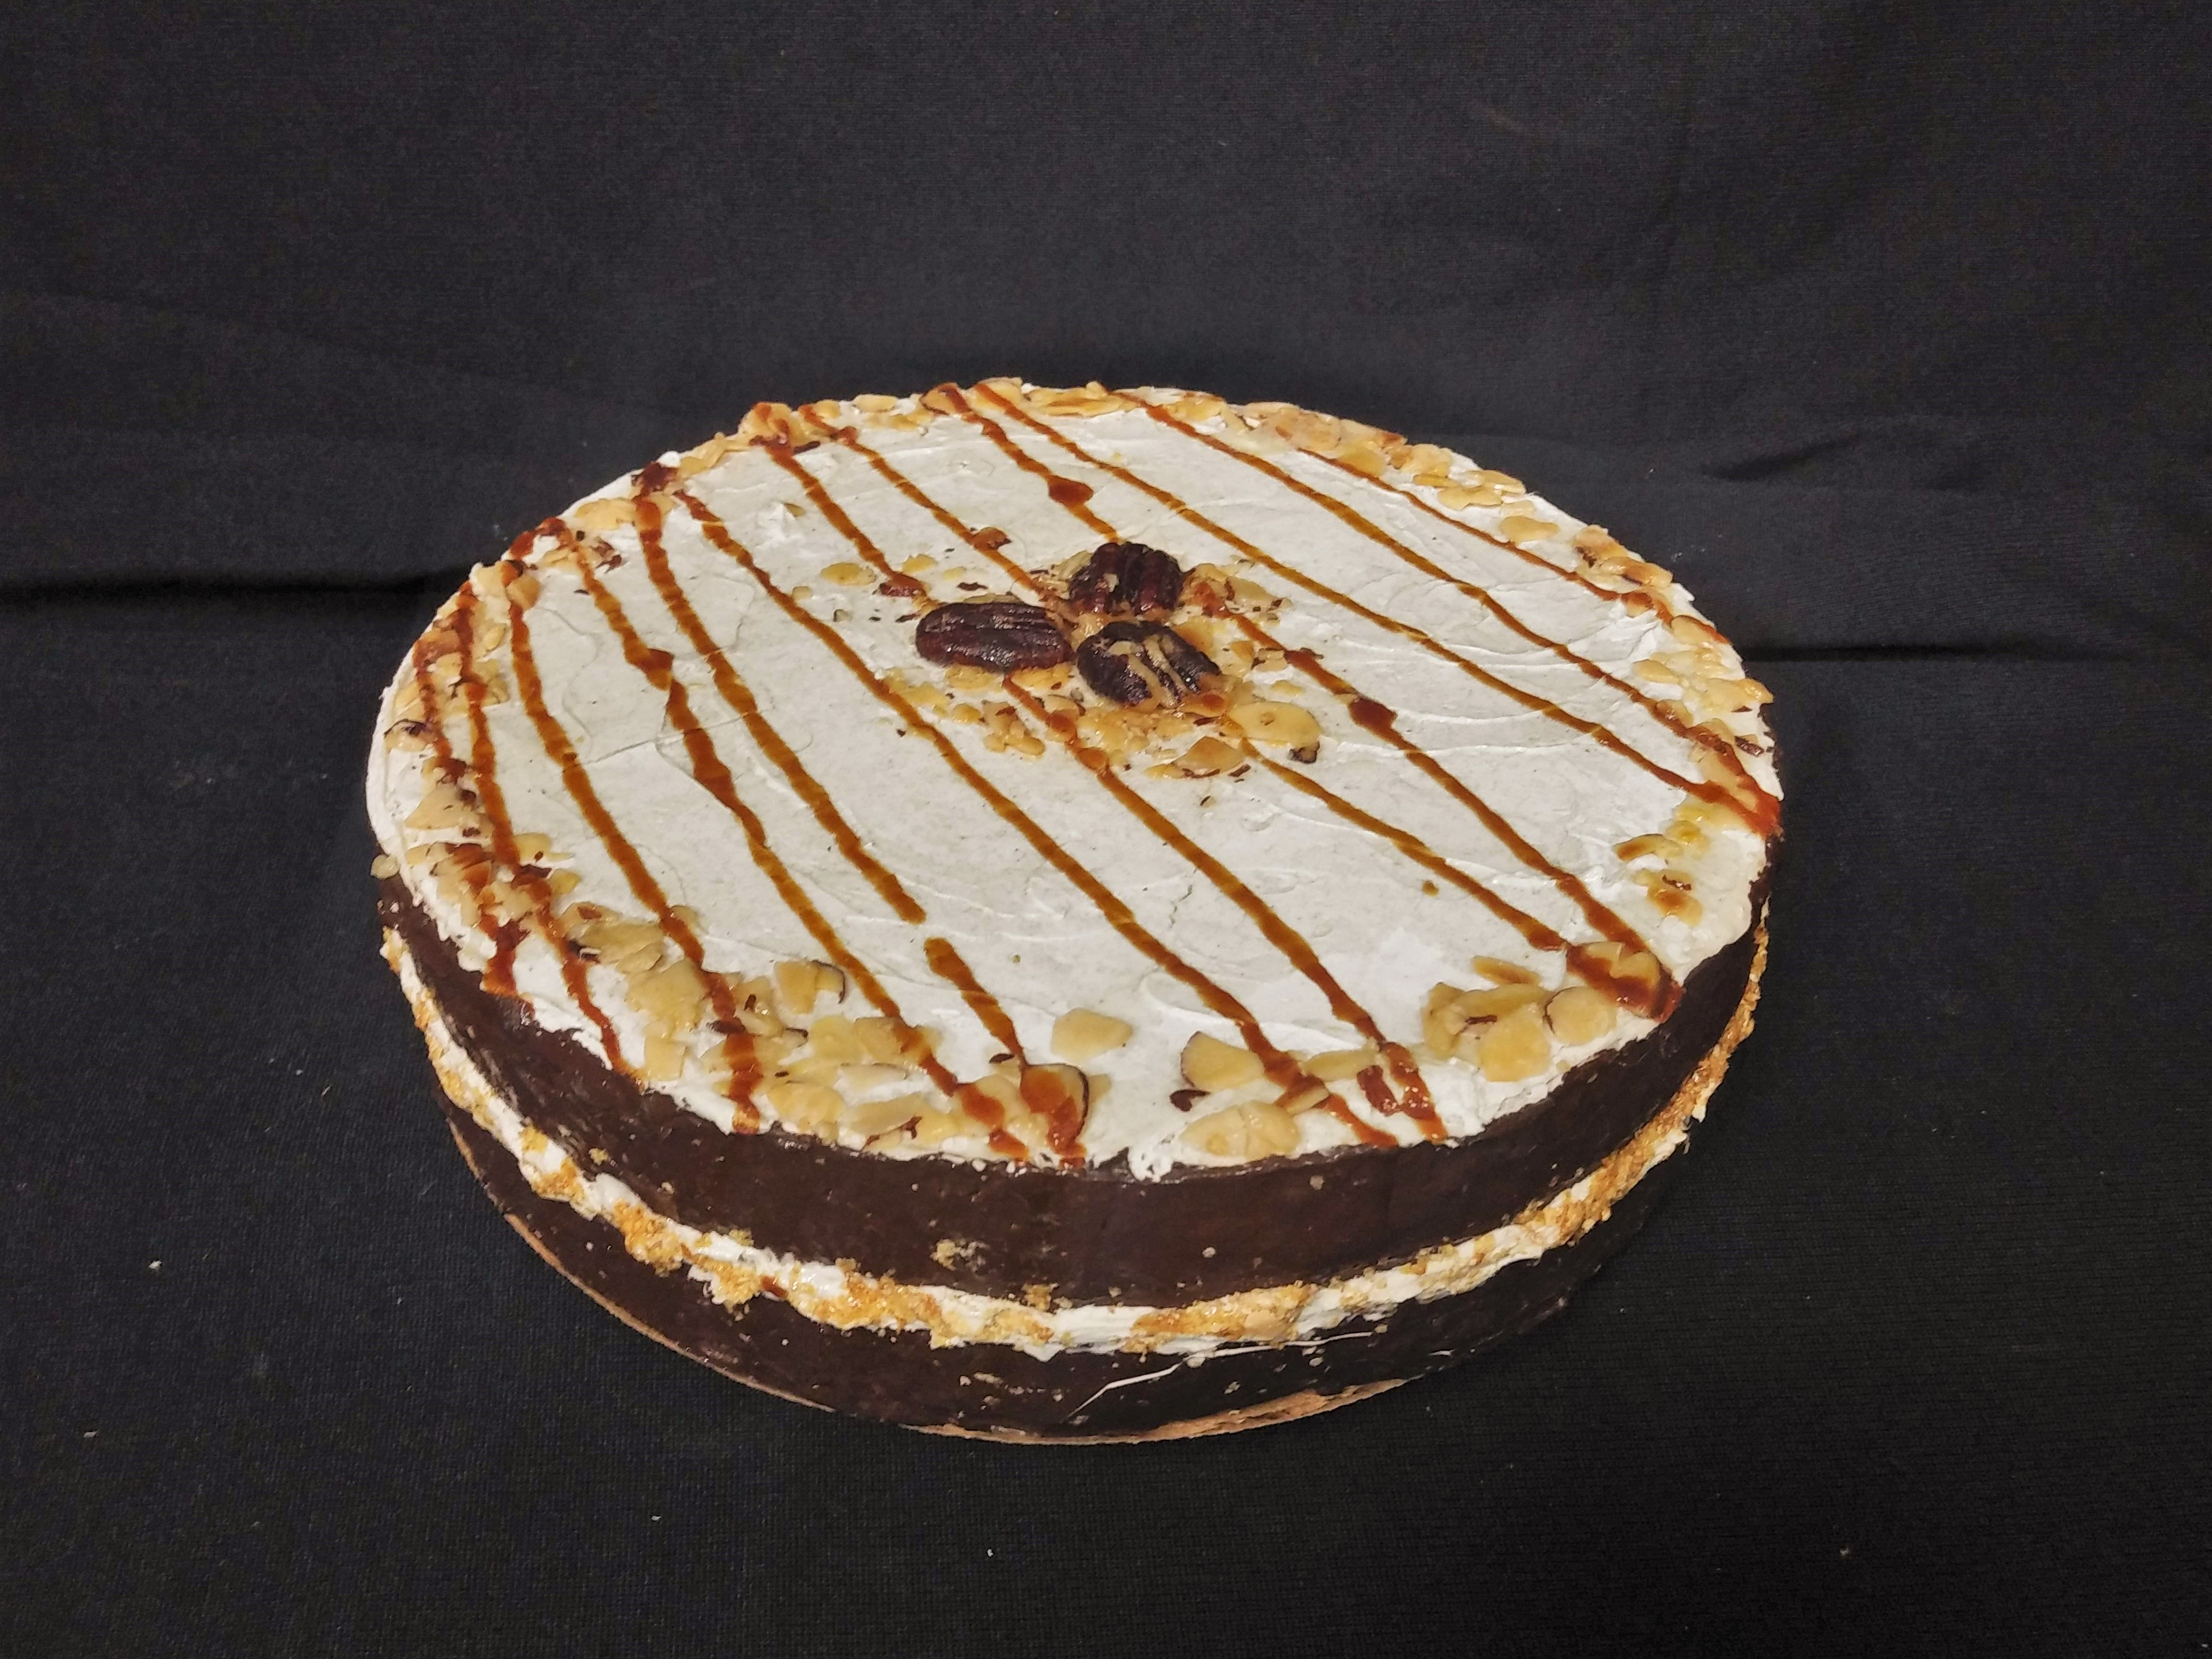 Chocolate Cake with Pecans